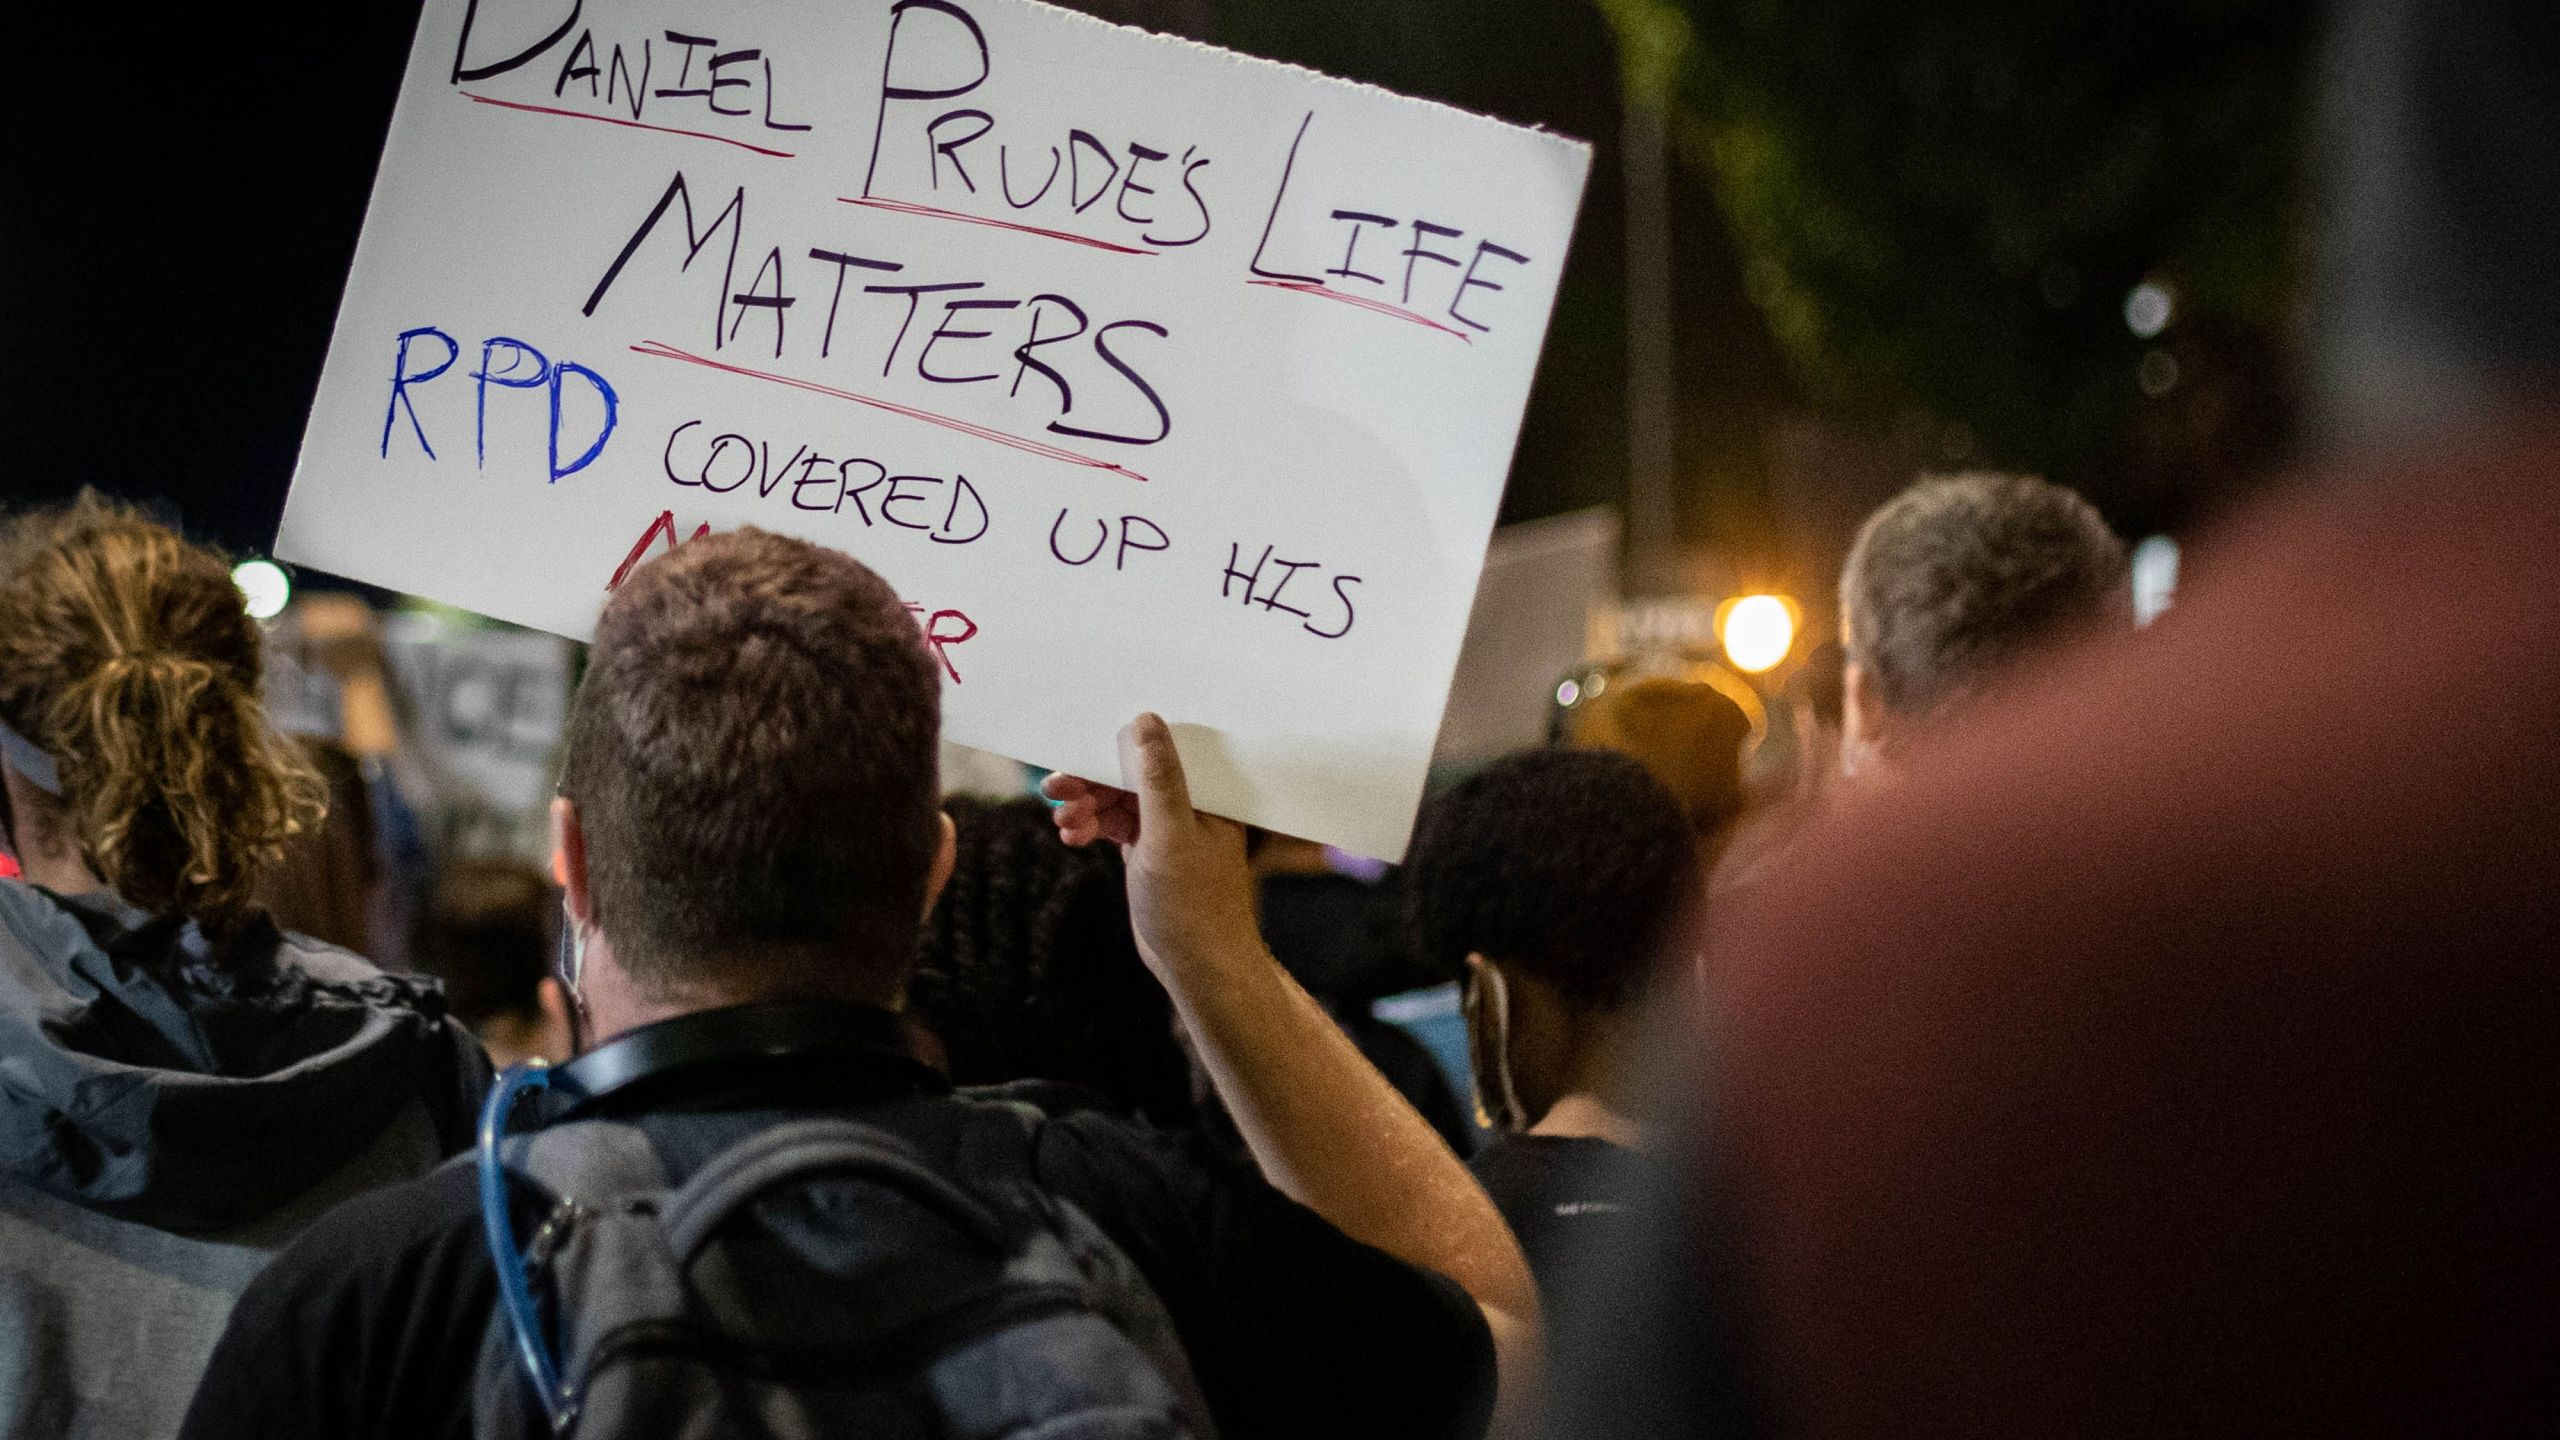 Protesters gather in Rochester, New York, on Sept. 4, 2020, on the third night of protest following the release of video showing the death of Daniel Prude. Prude, a 41-year-old African American who had mental health issues, died of asphyxiation after police arrested him on March 23, 2020, in Rochester. (Maranie R. STAAB / AFP via Getty Images)